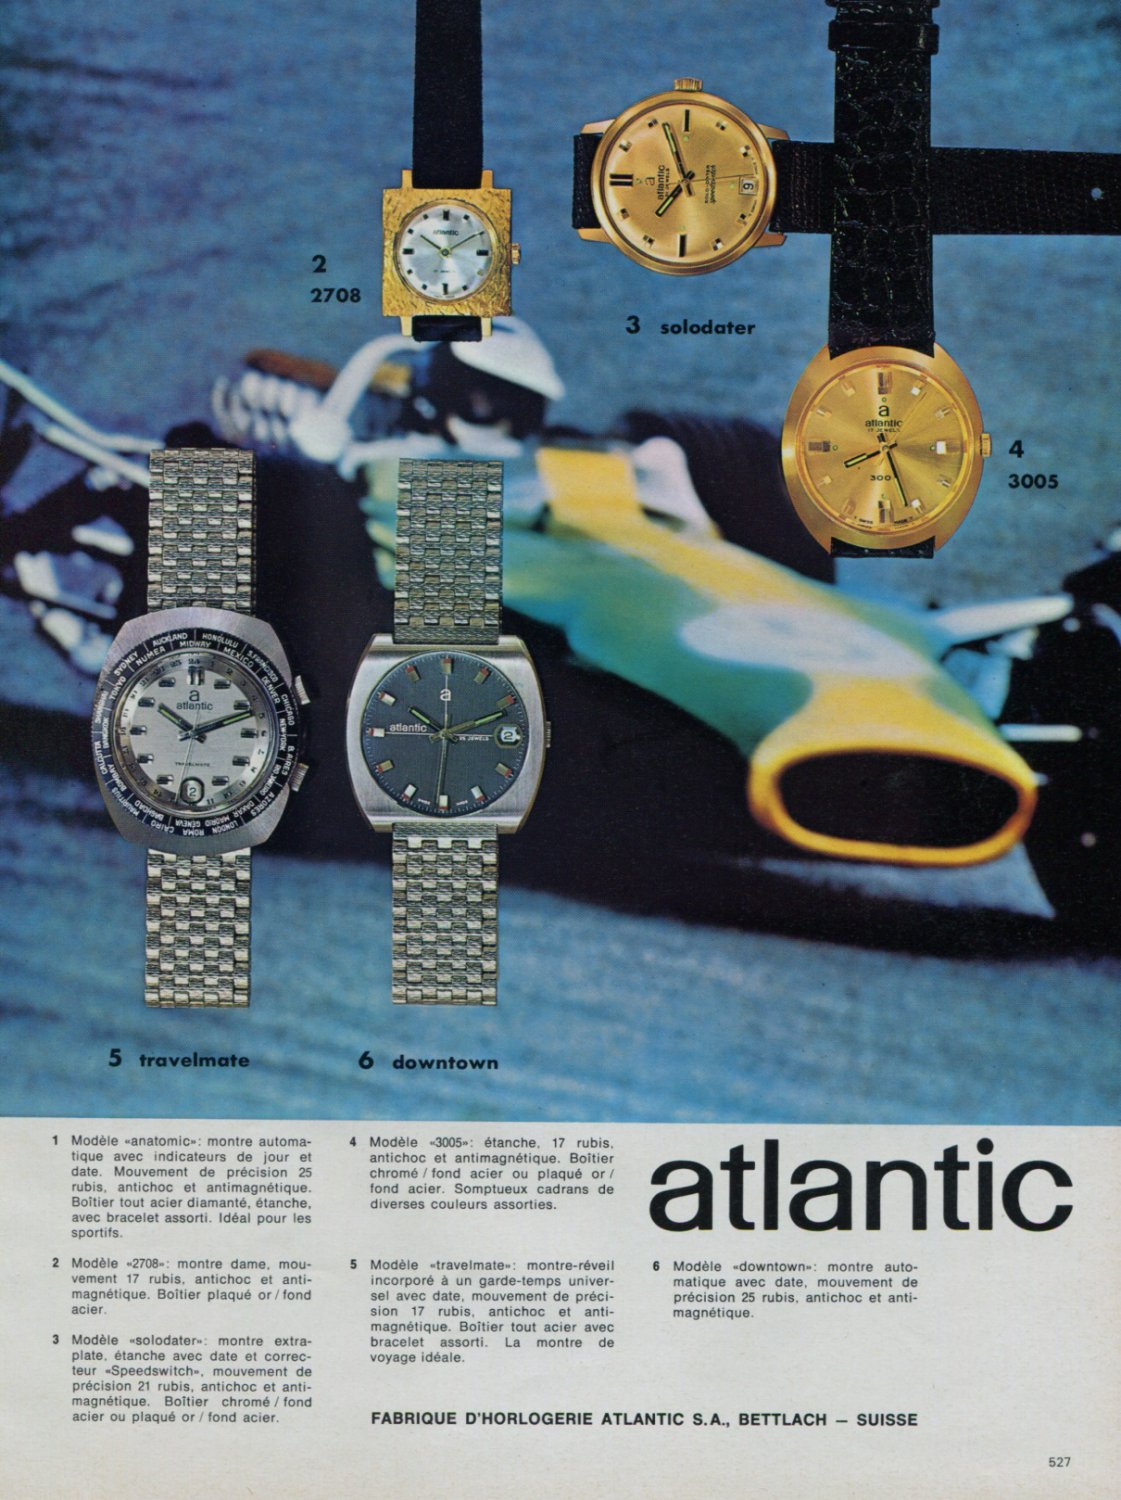 Atlantic Watch Company Switzerland Vintage 1968 Swiss Ad Suisse Advert Horology